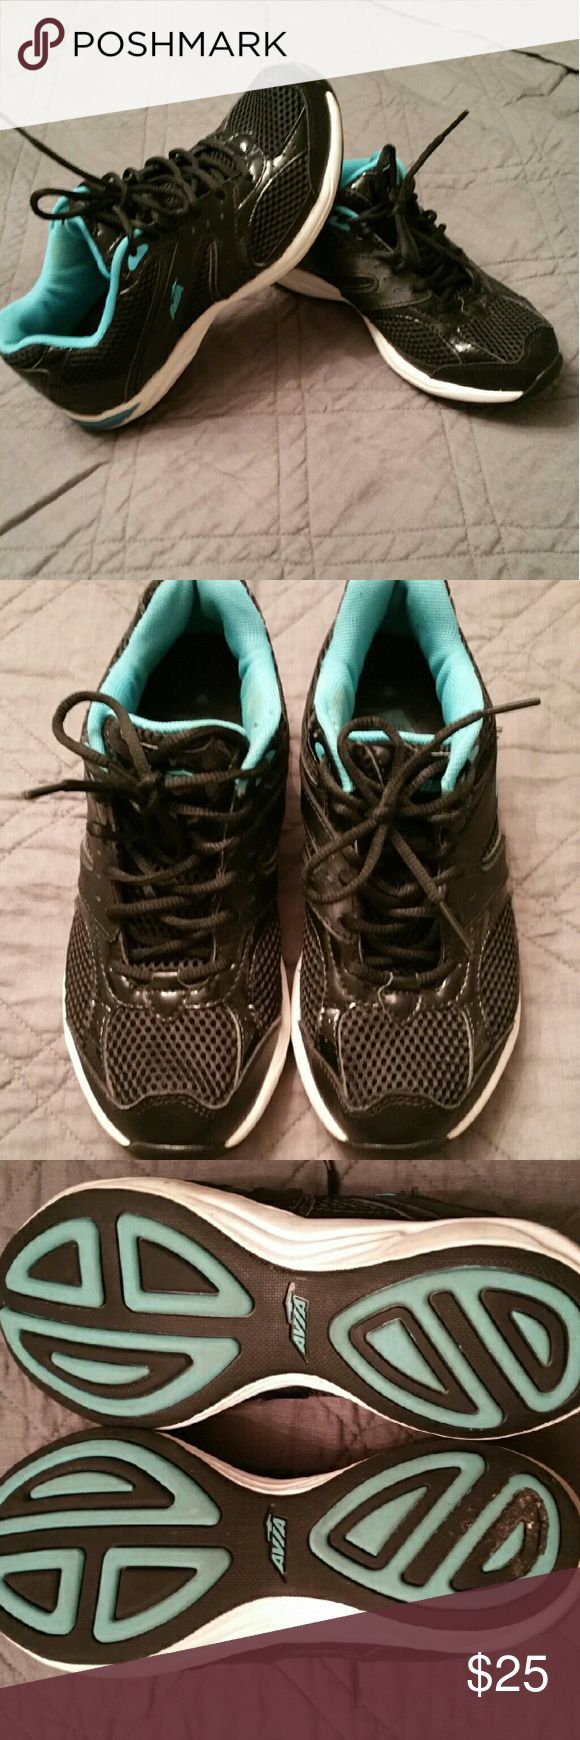 Sneakers Black and aqua running shoes like new only used a couple times Avia Shoes Sneakers